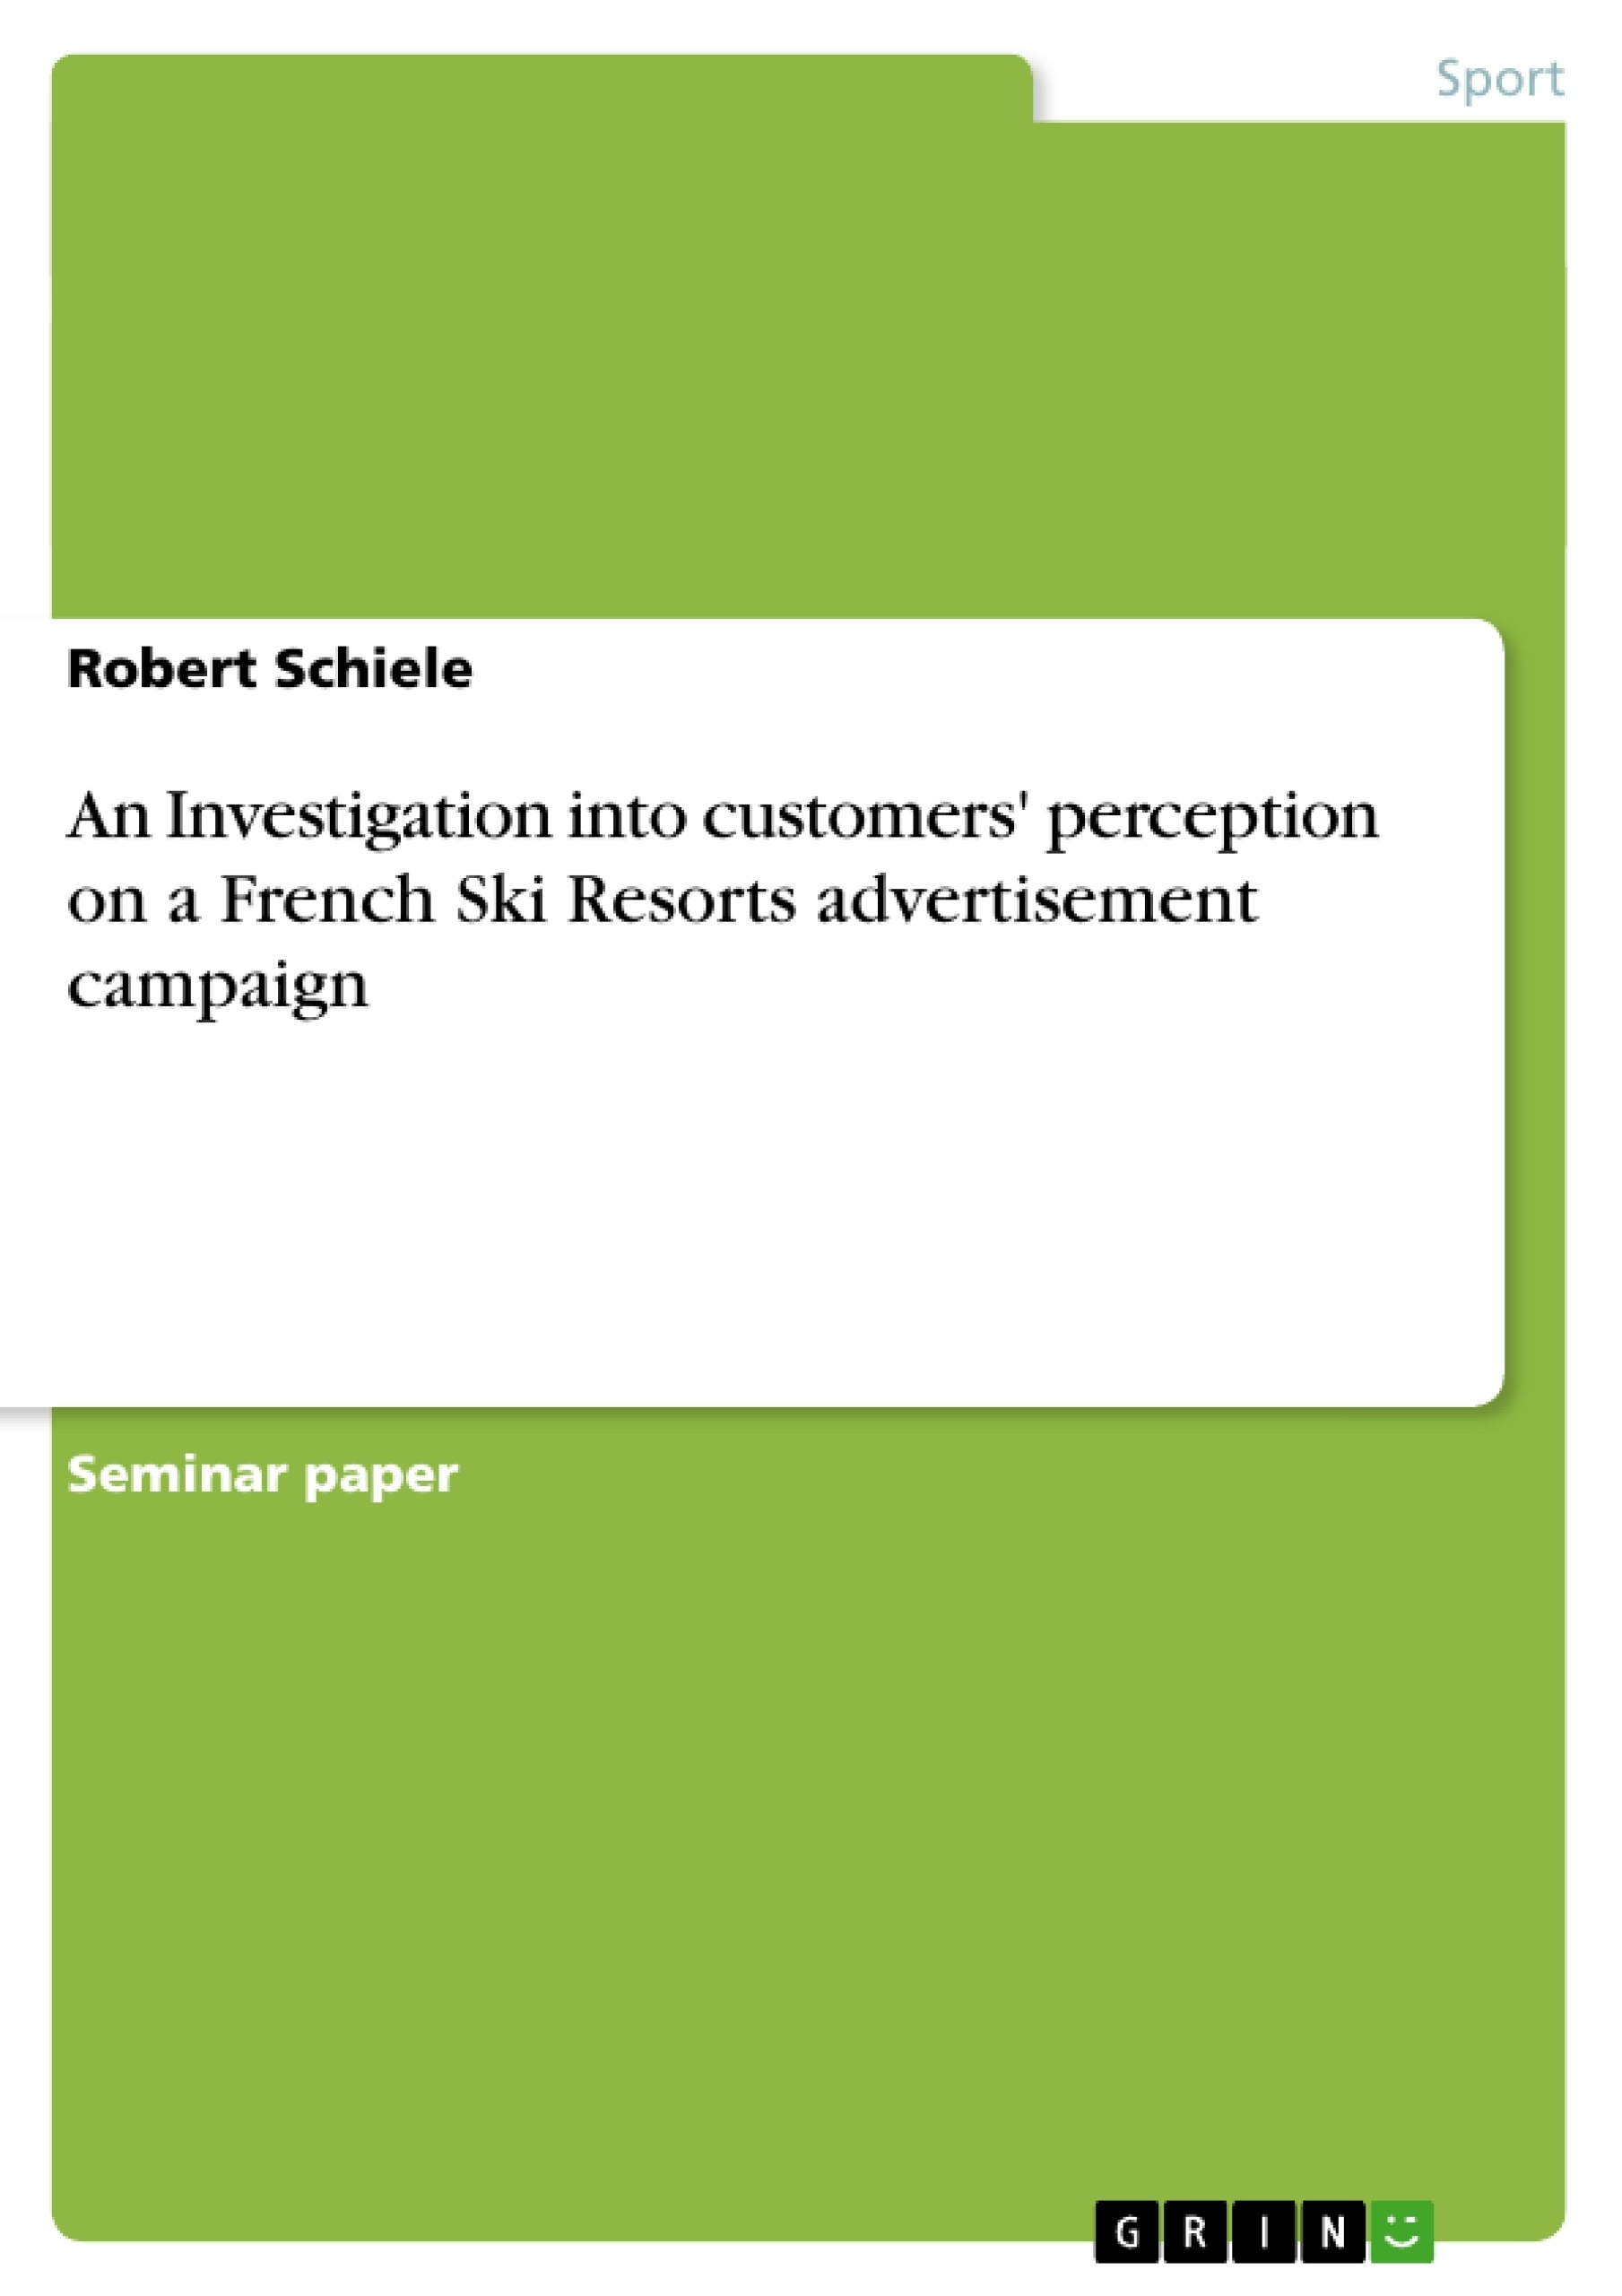 Published french thesis